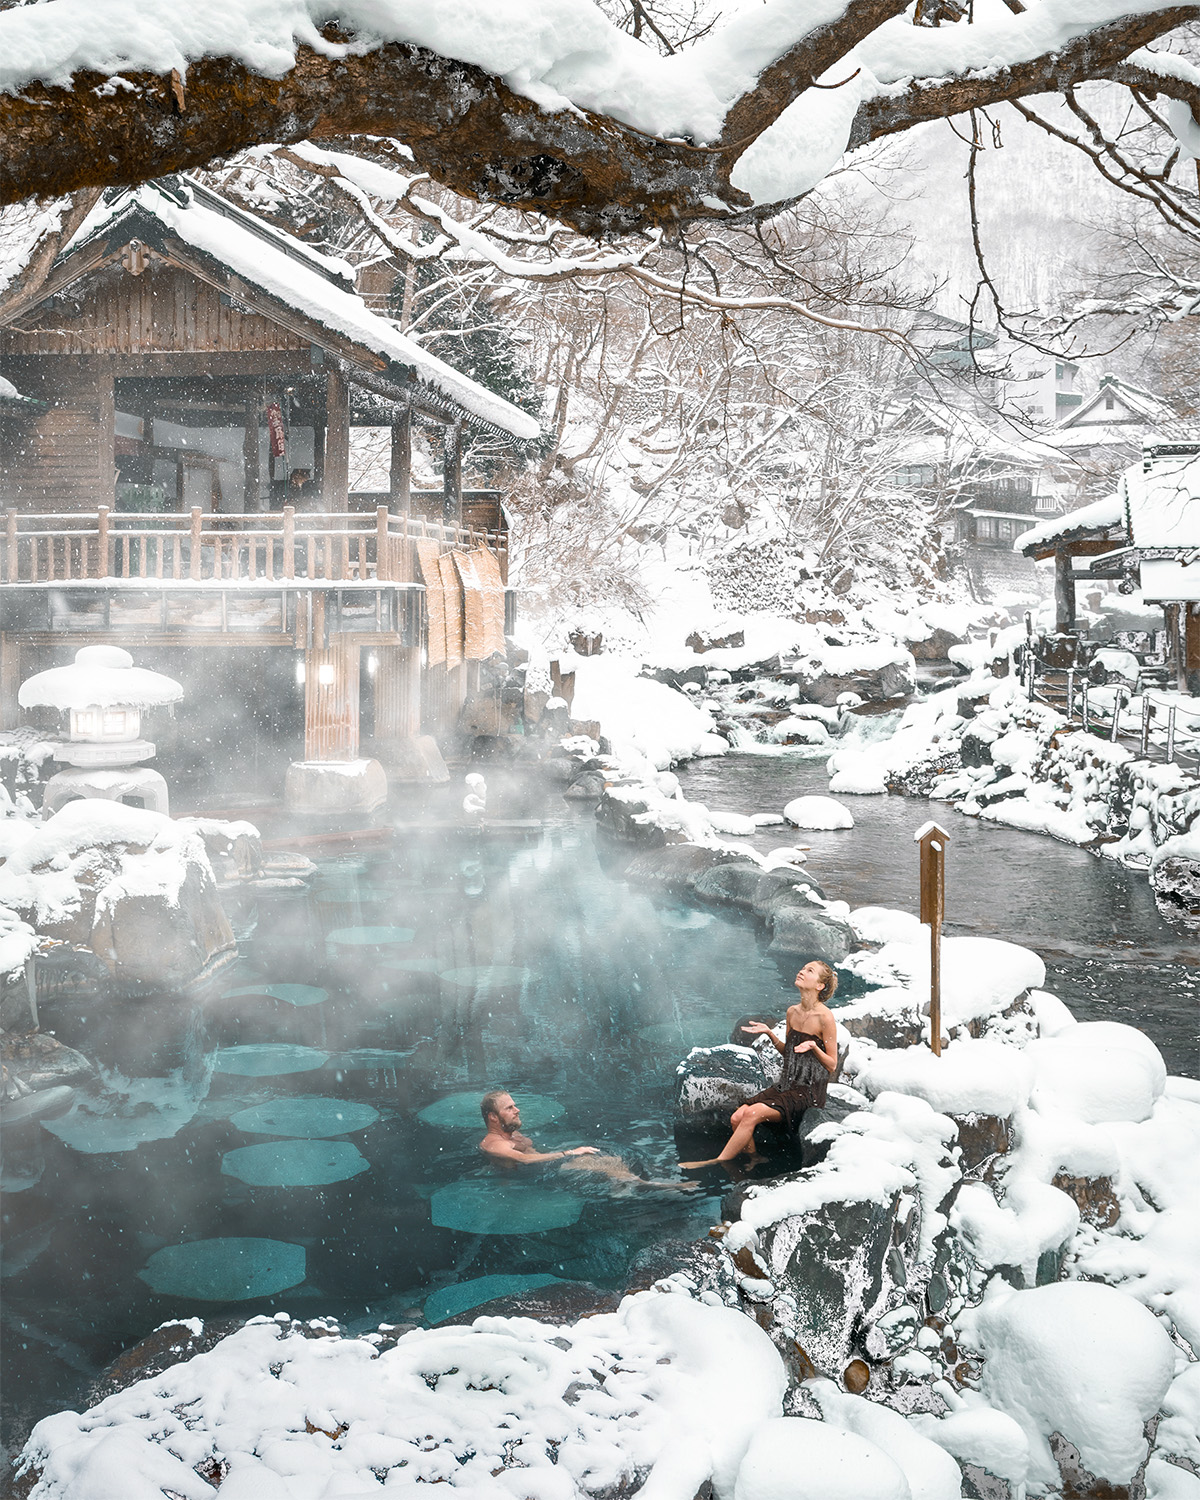 Takaragawa Onsen in Japan in winter